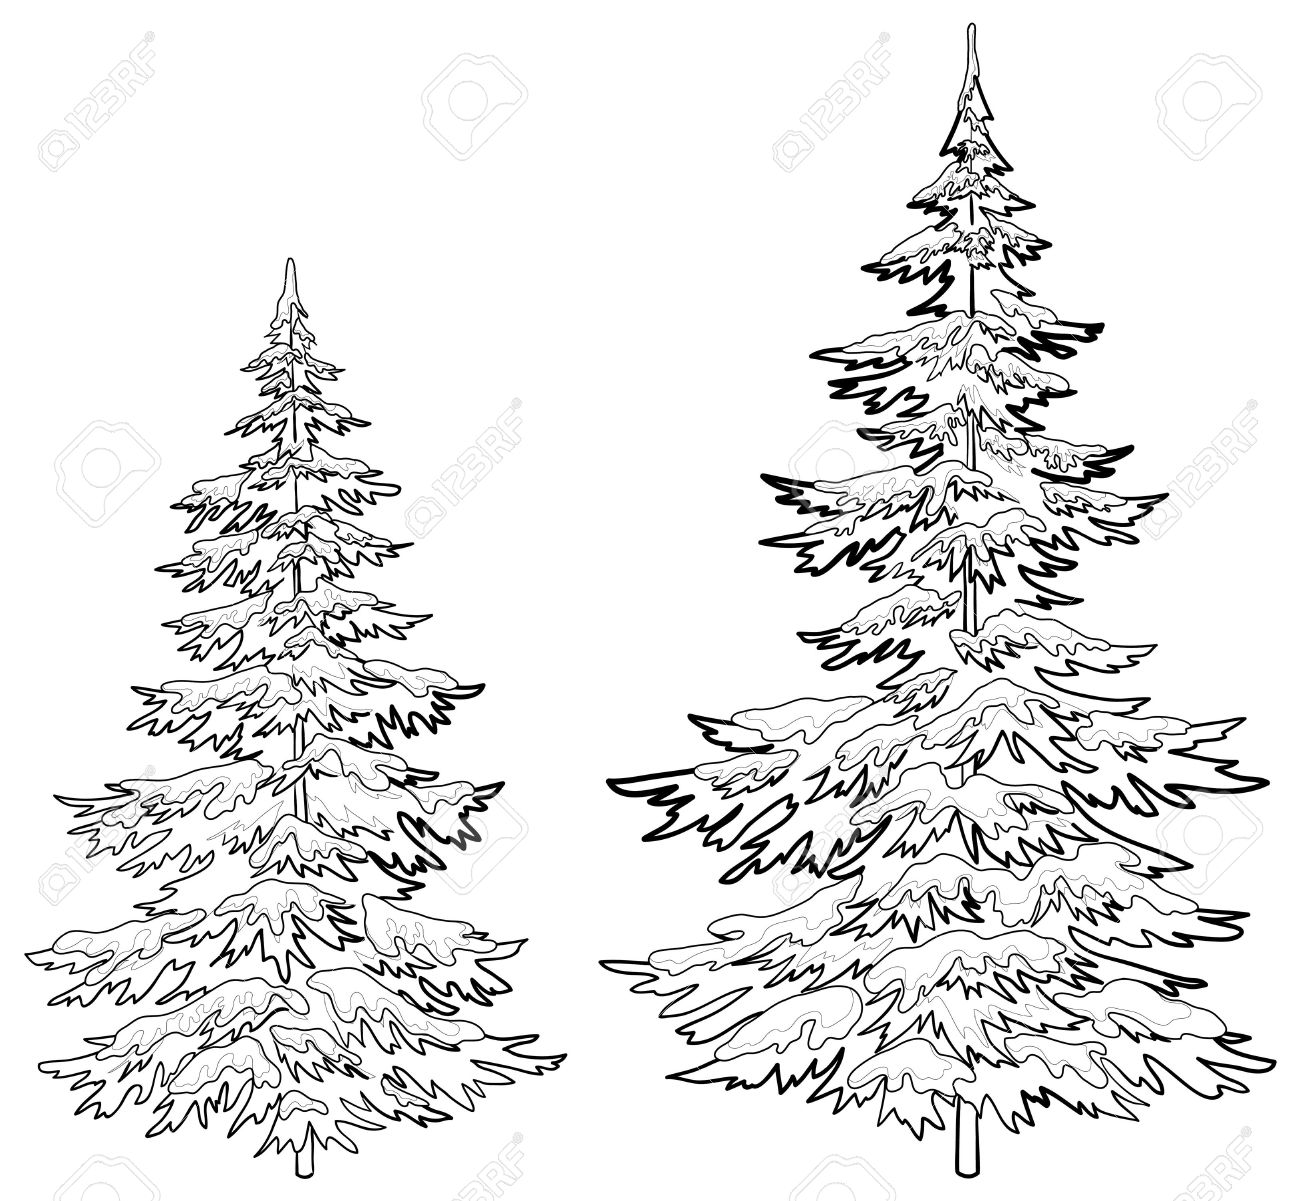 Black And White Christmas Tree Drawing at GetDrawings ...